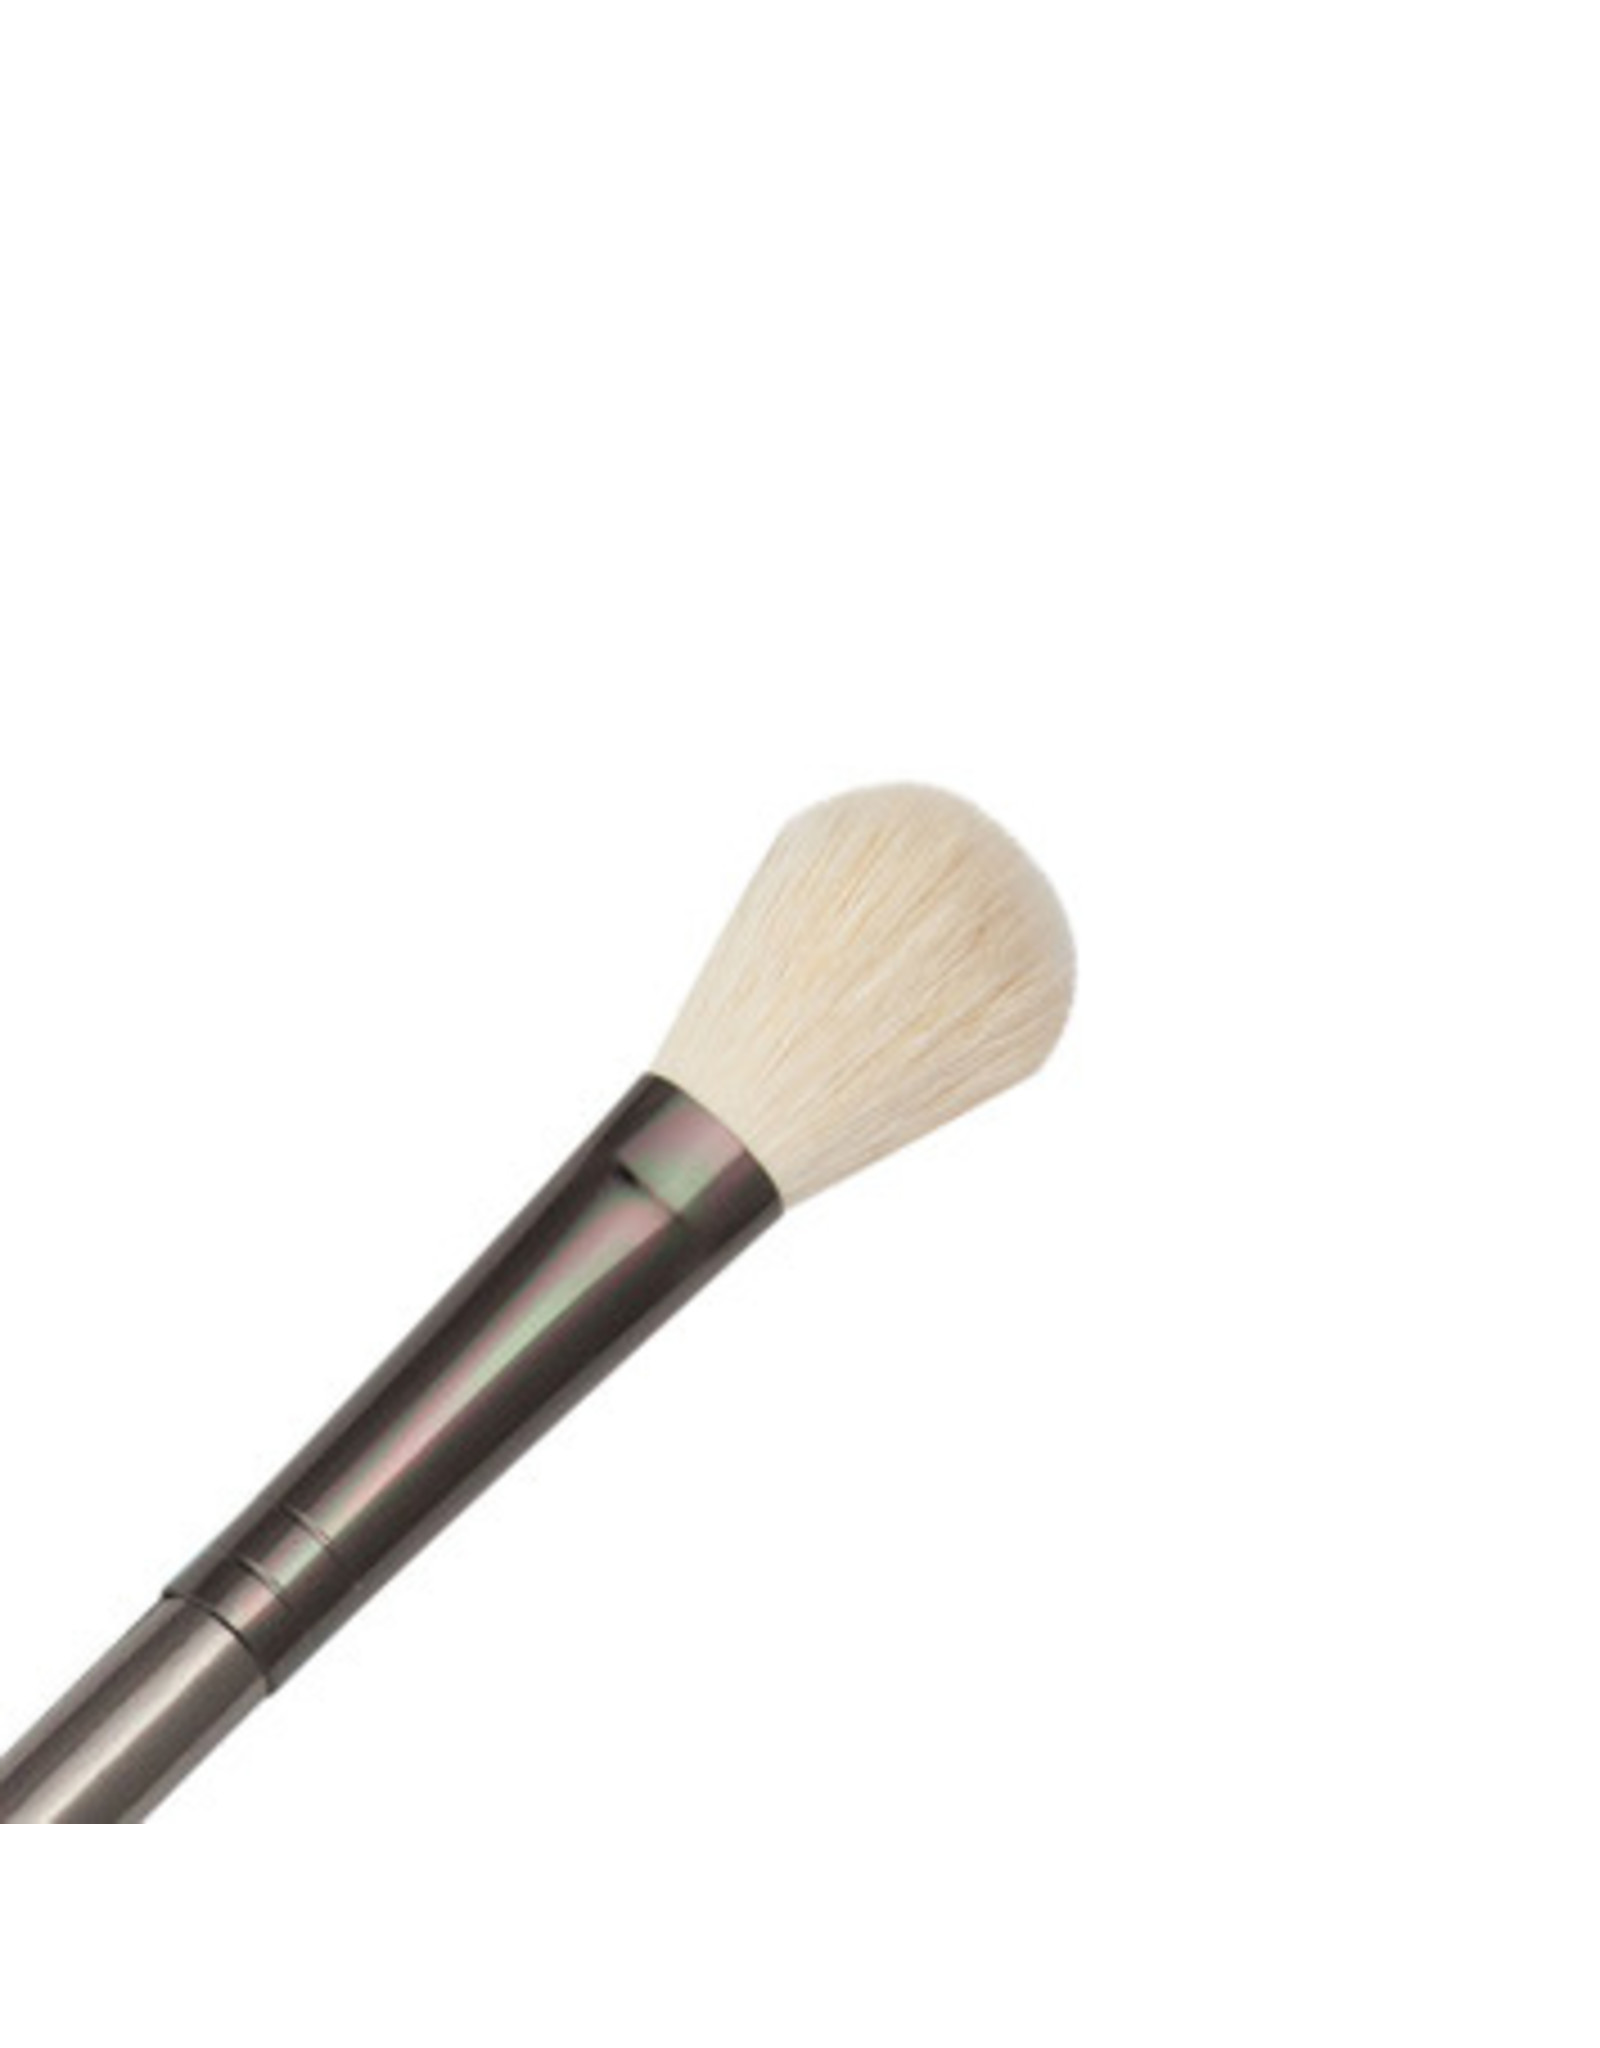 Royal & Langnickel Zen 83 Series White Goat Mop 12mm brush